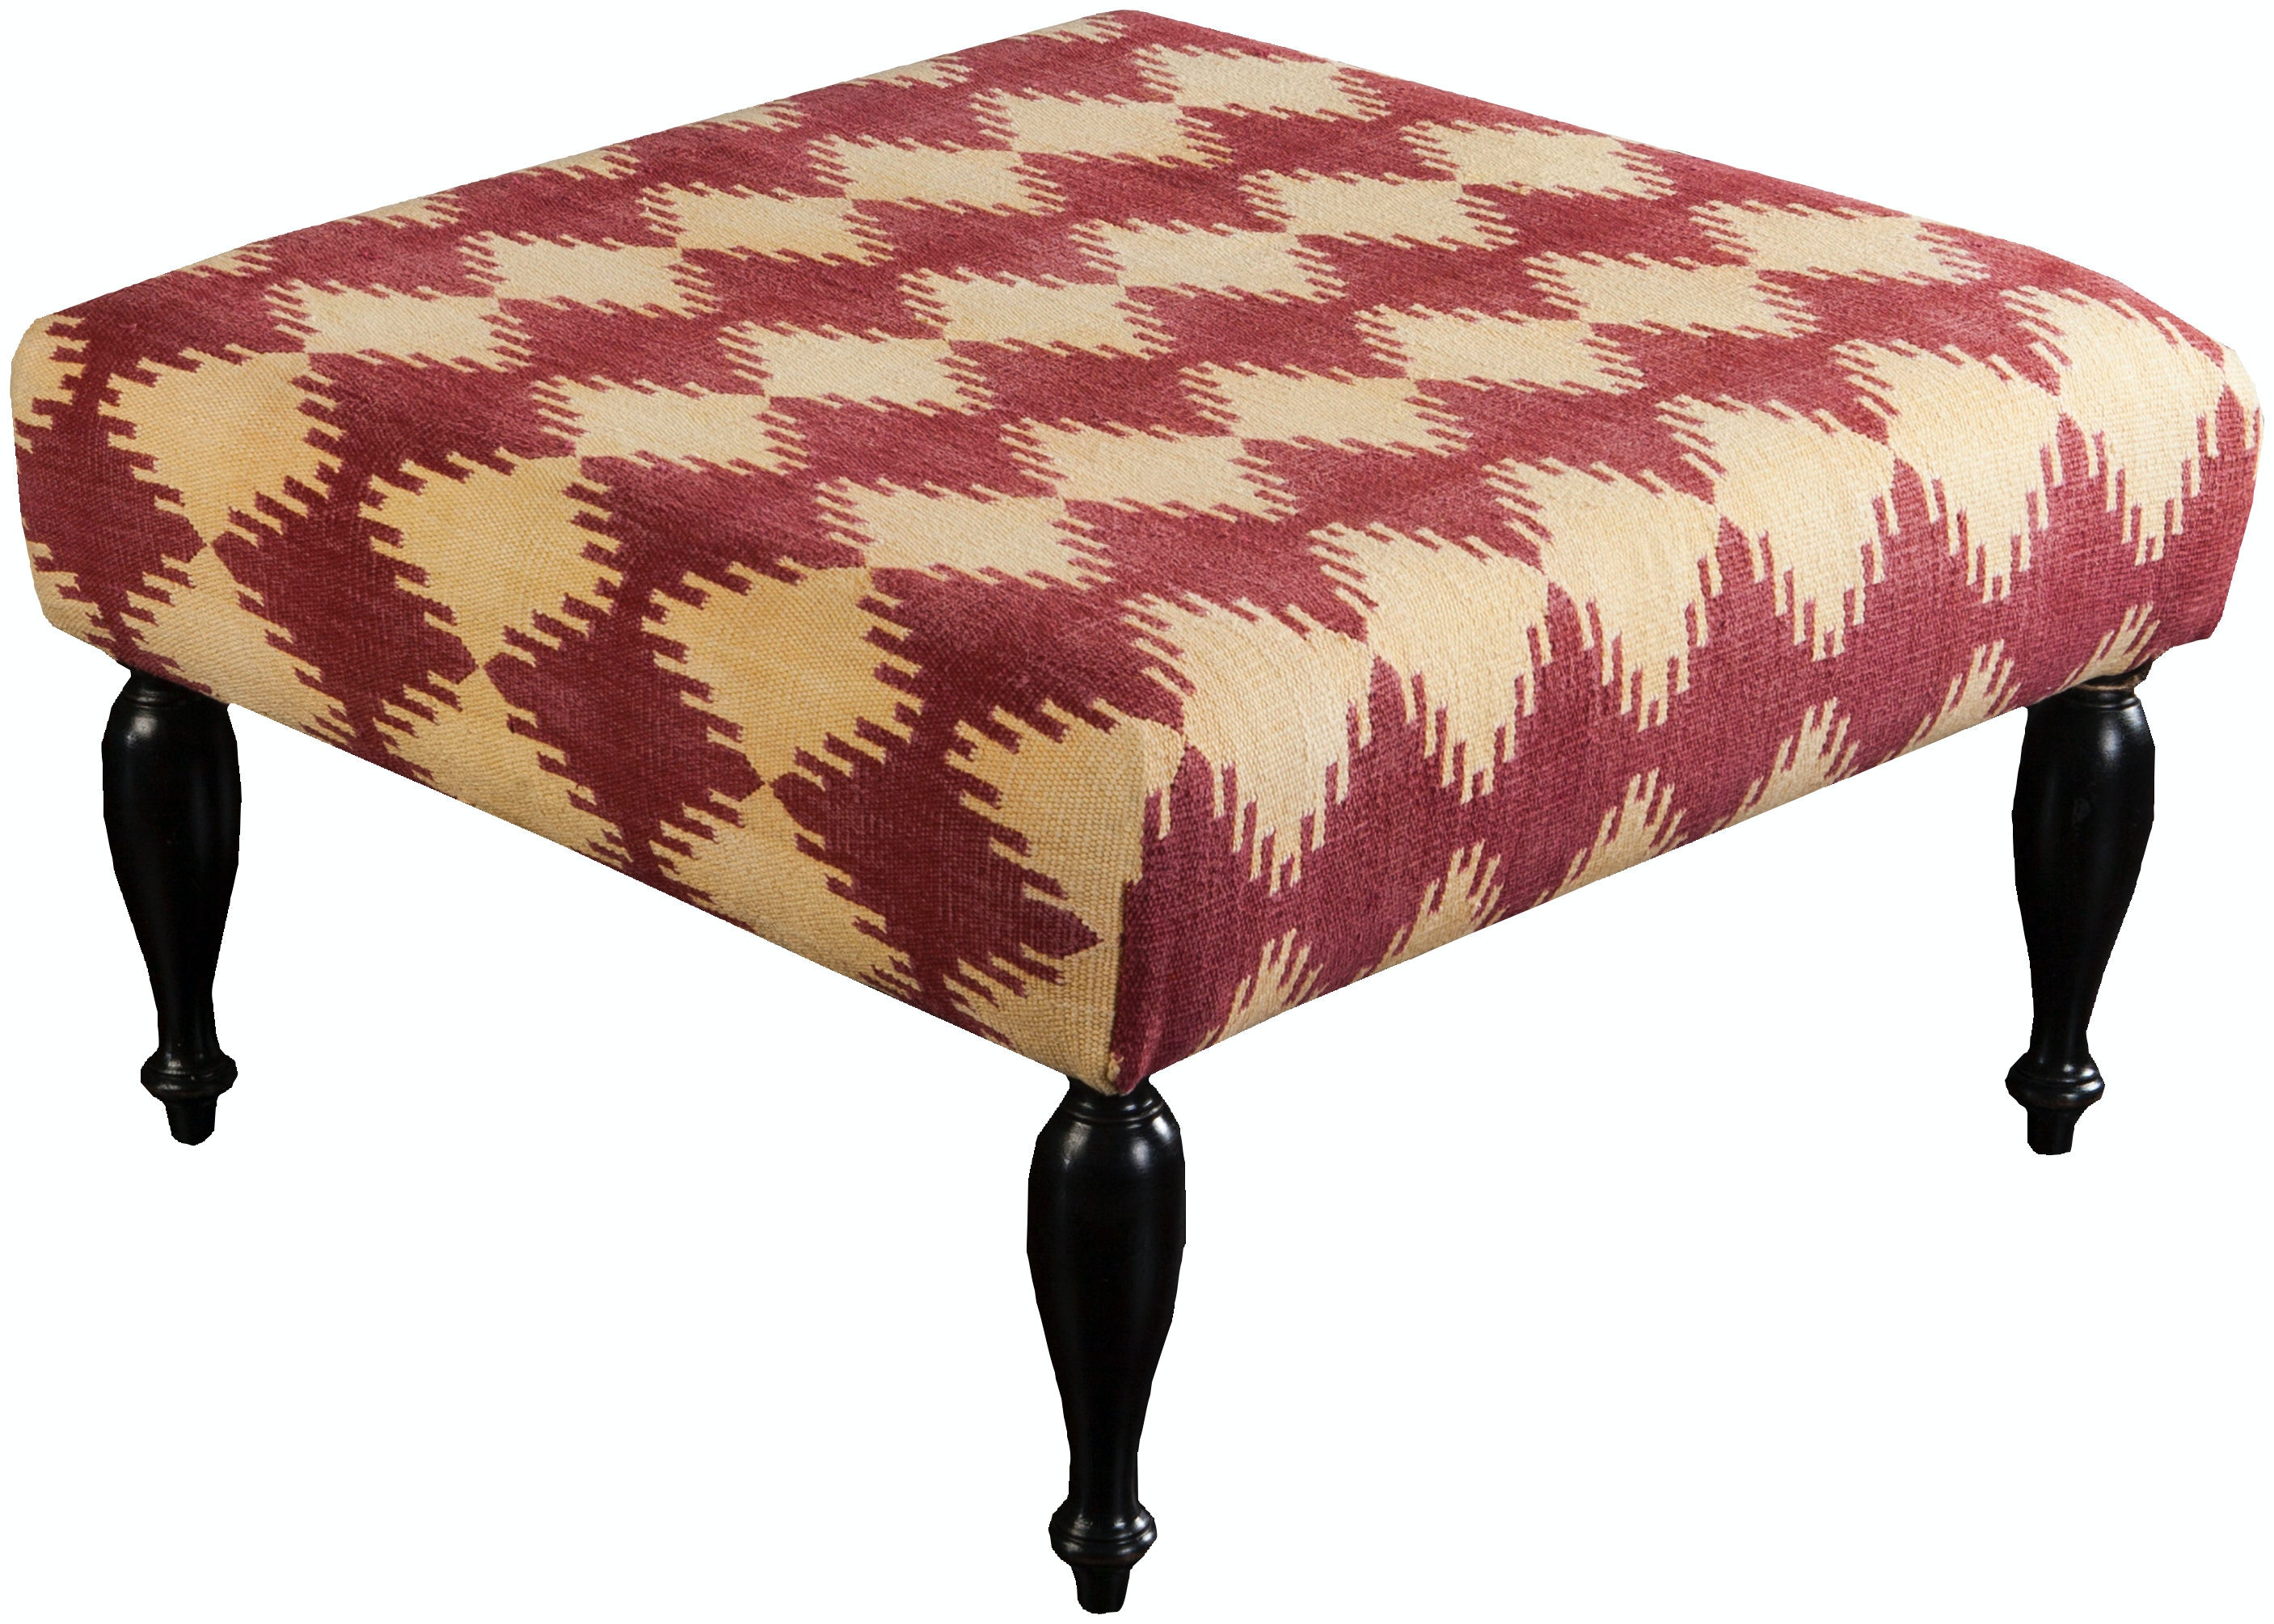 Surya Furniture 32 X 32 X 18 Ottoman FL1015 808045